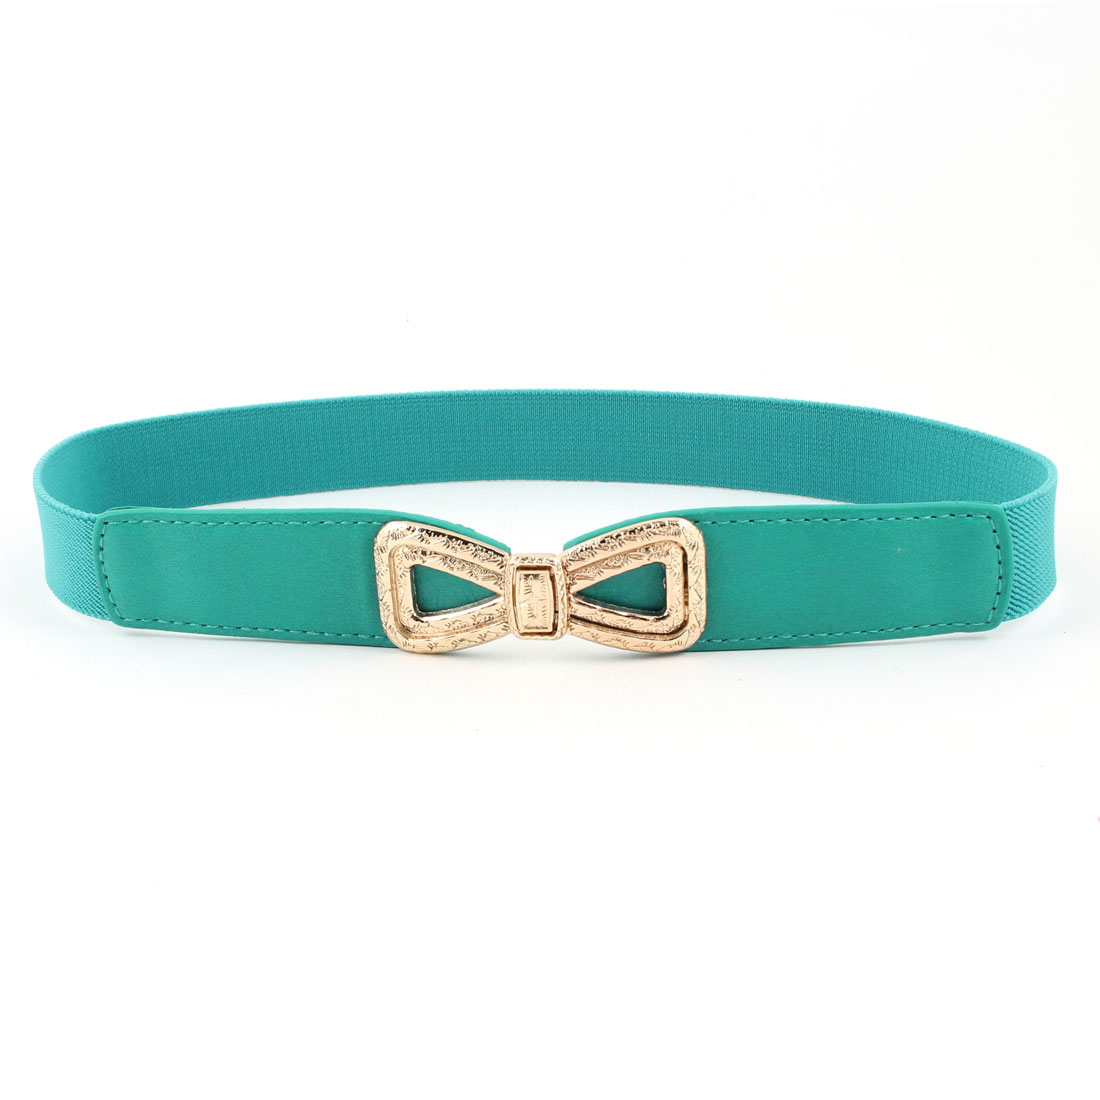 Ladies Embossment Interlock Buckle Stretchy Faux Leather Waist Belt Teal Green